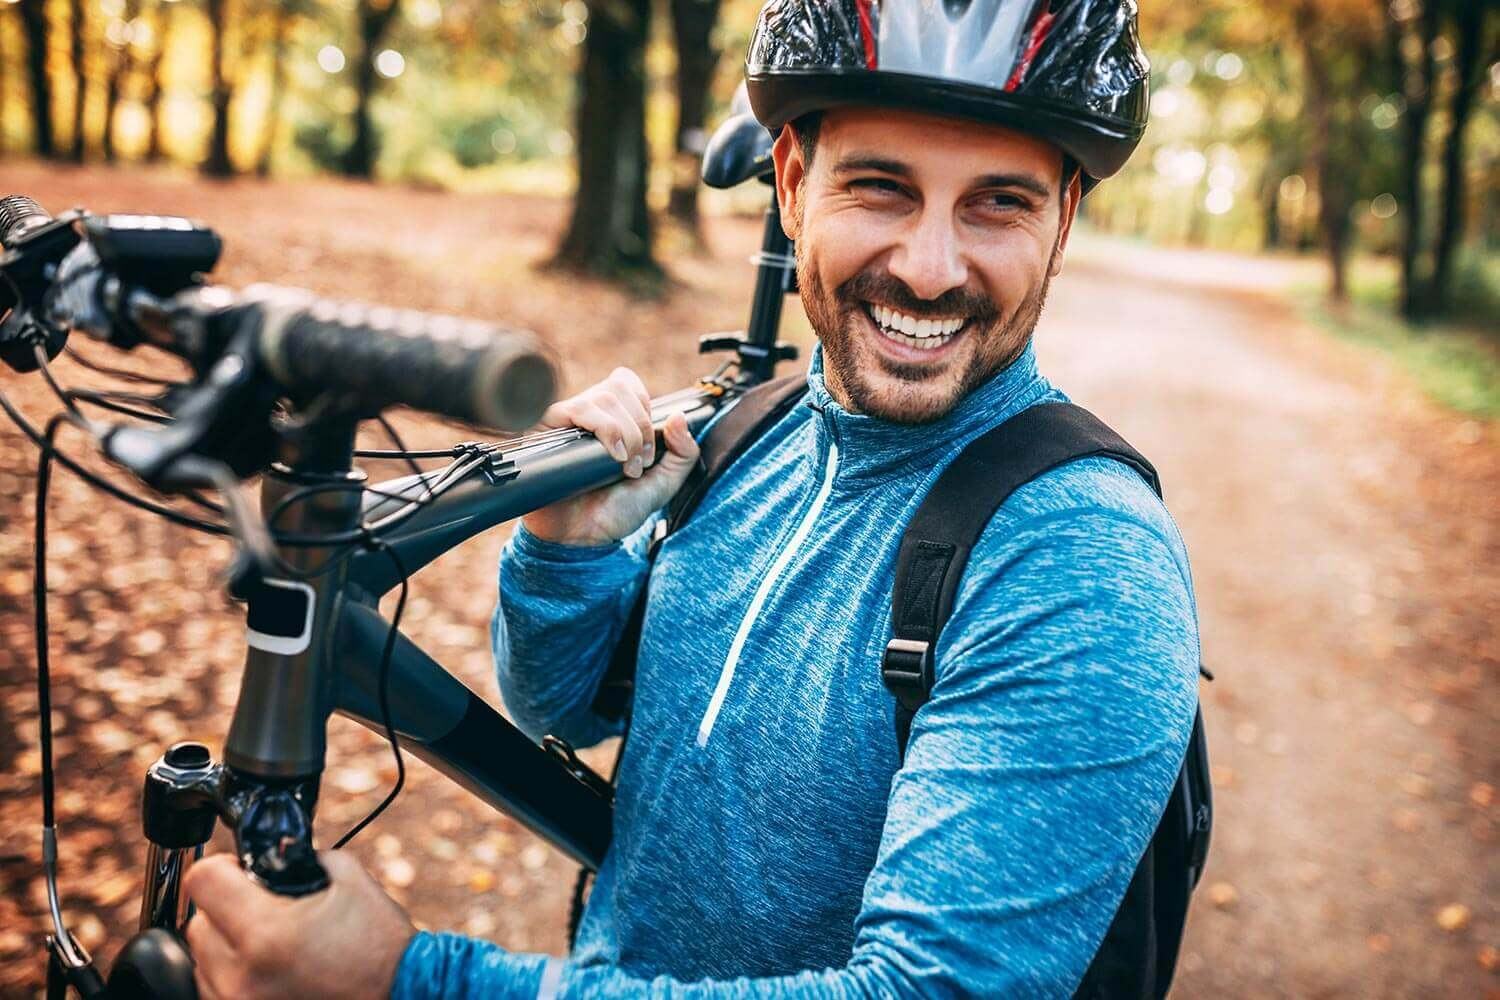 Smiling Man Carrying a Bike